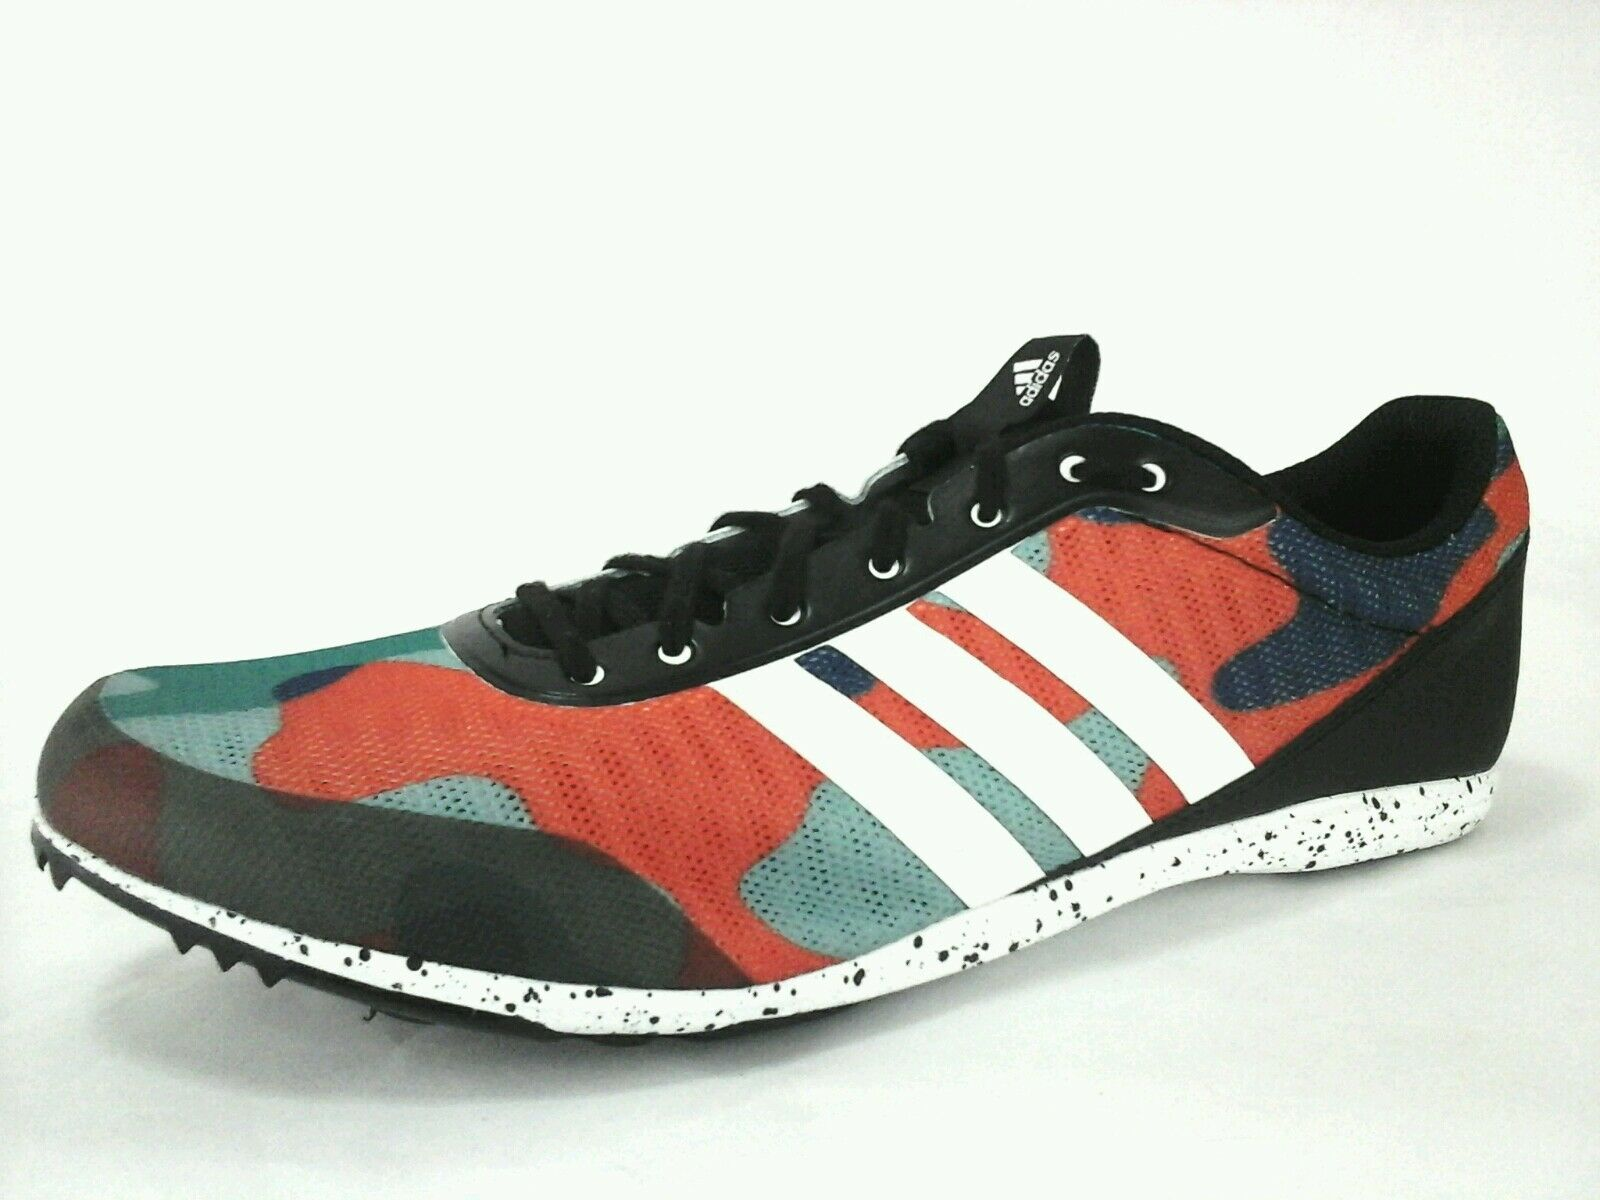 Adidas Mens Running Multicolor Camouflage shoes Cleats US 9.5 NWOB